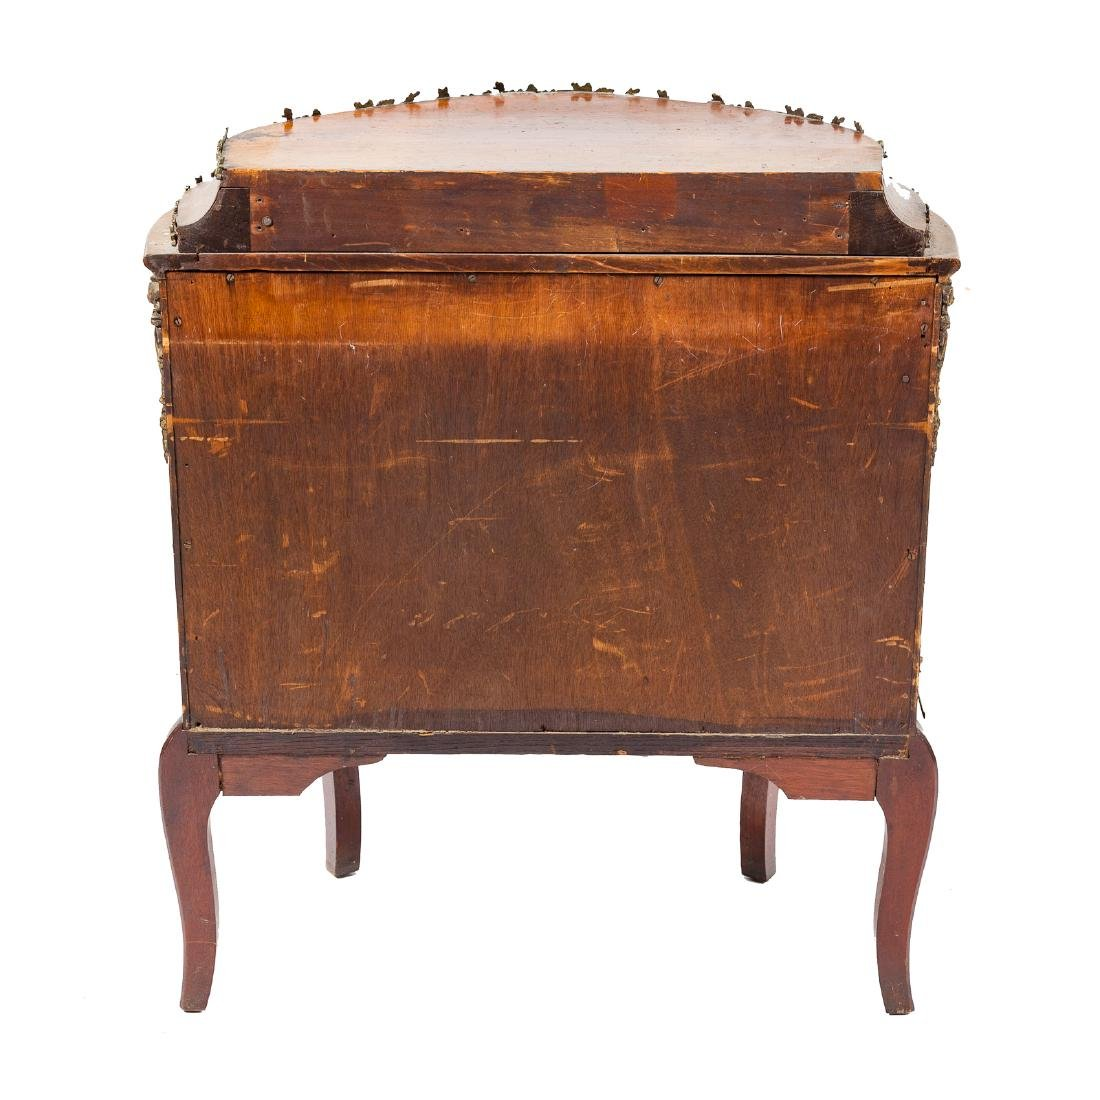 Louis XV style kingwood brass-mounted commode - 5